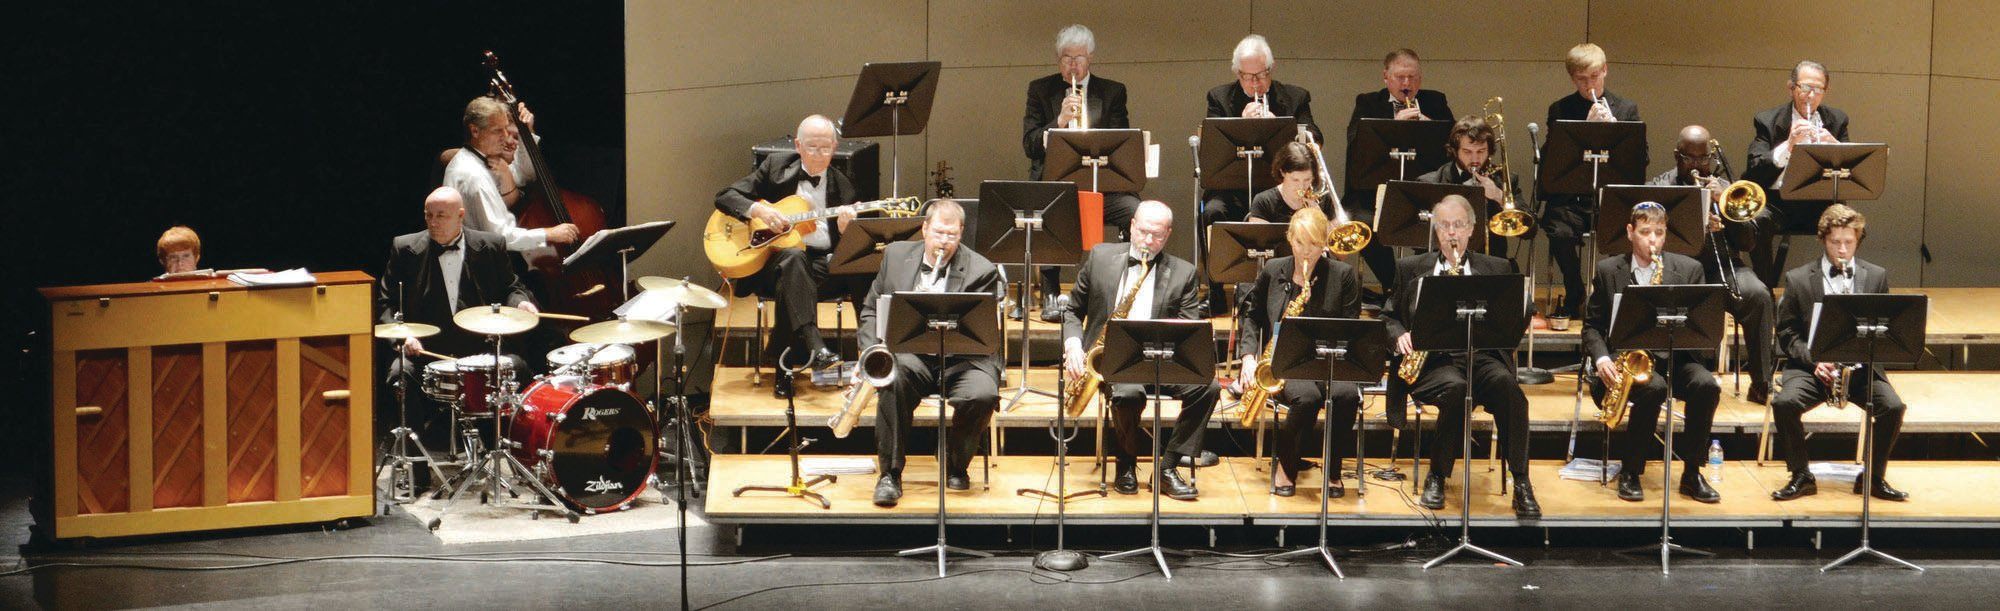 PHOTO PROVIDEDThe SCCB Jazz Ensemble will open Fall for the Arts at 7 p.m. Tuesday in Patriot Hall. Jazz and pop songs will be featured in the concert, which will be preceded by an art show sponsored by the YWCA.